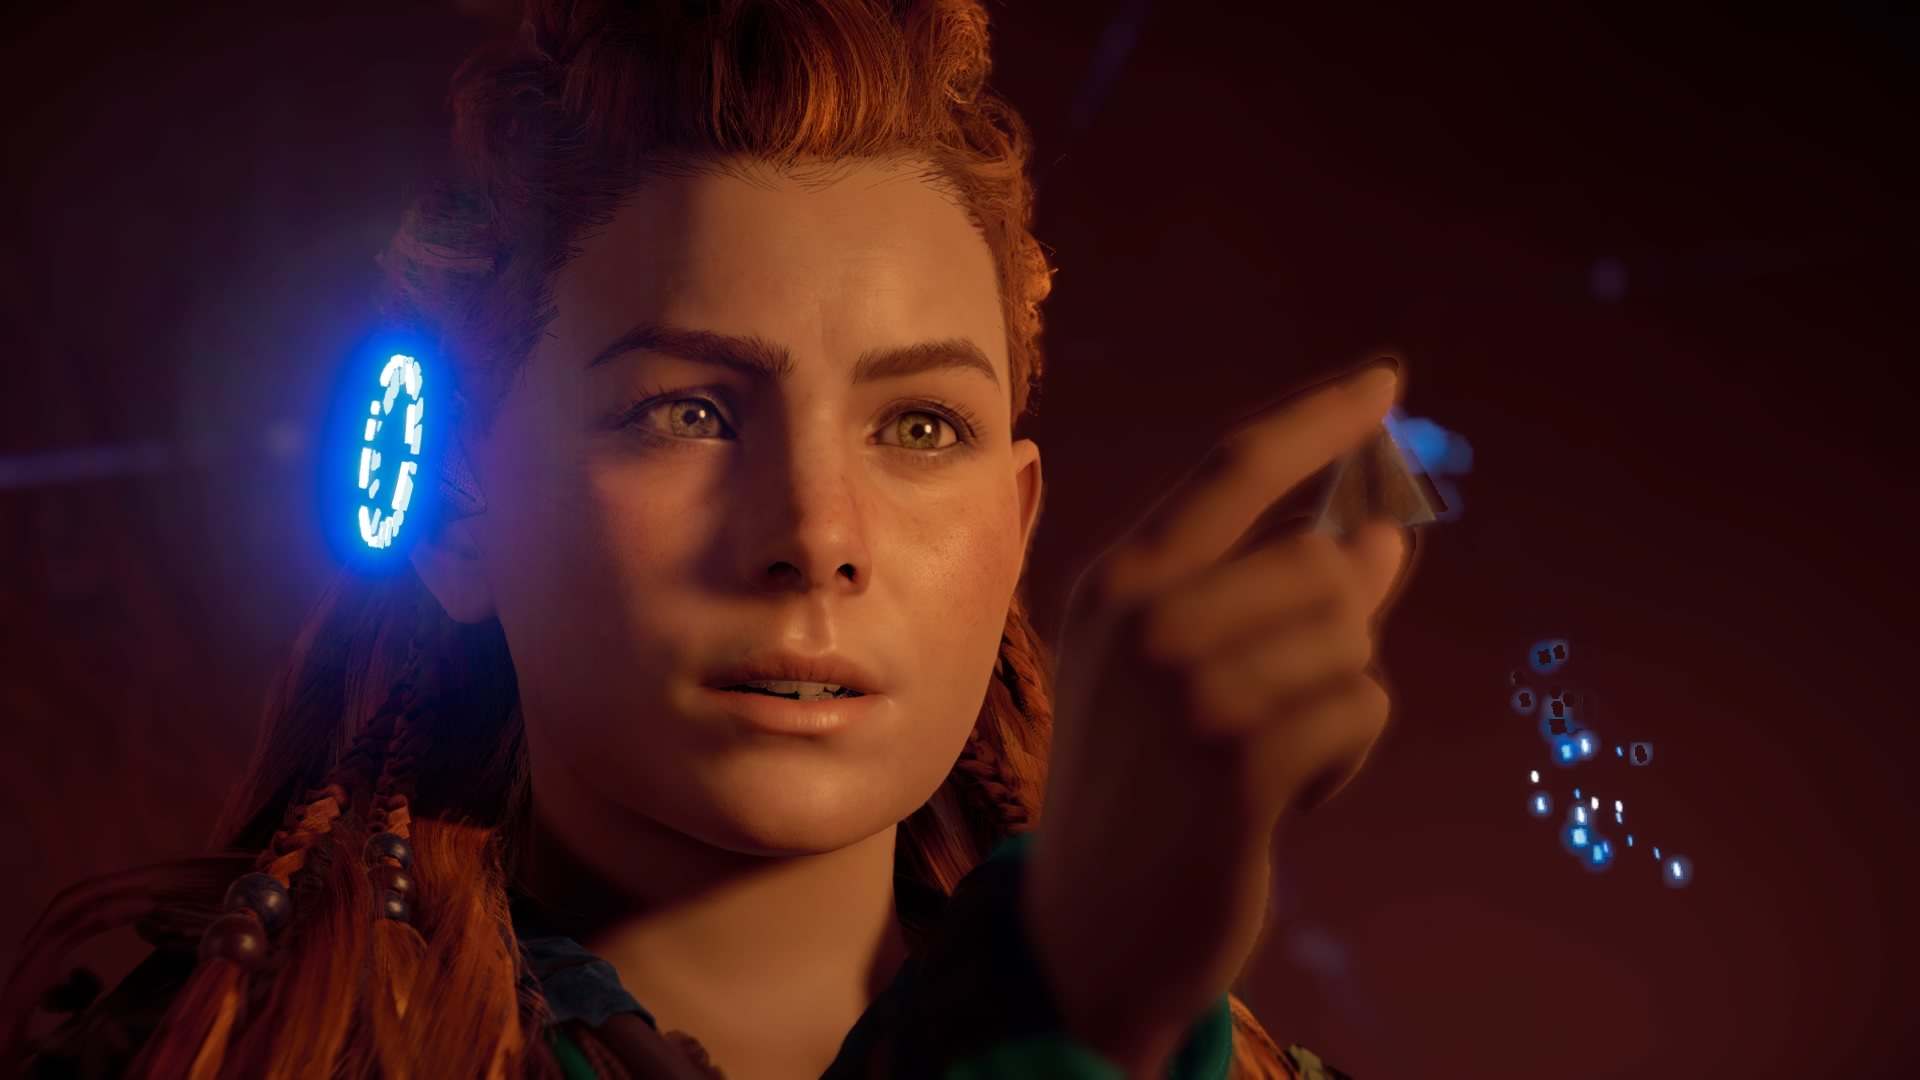 The Complete Edition of the excellent <em>Horizon Zero Dawn</em> is currently free for all PlayStation owners to keep.